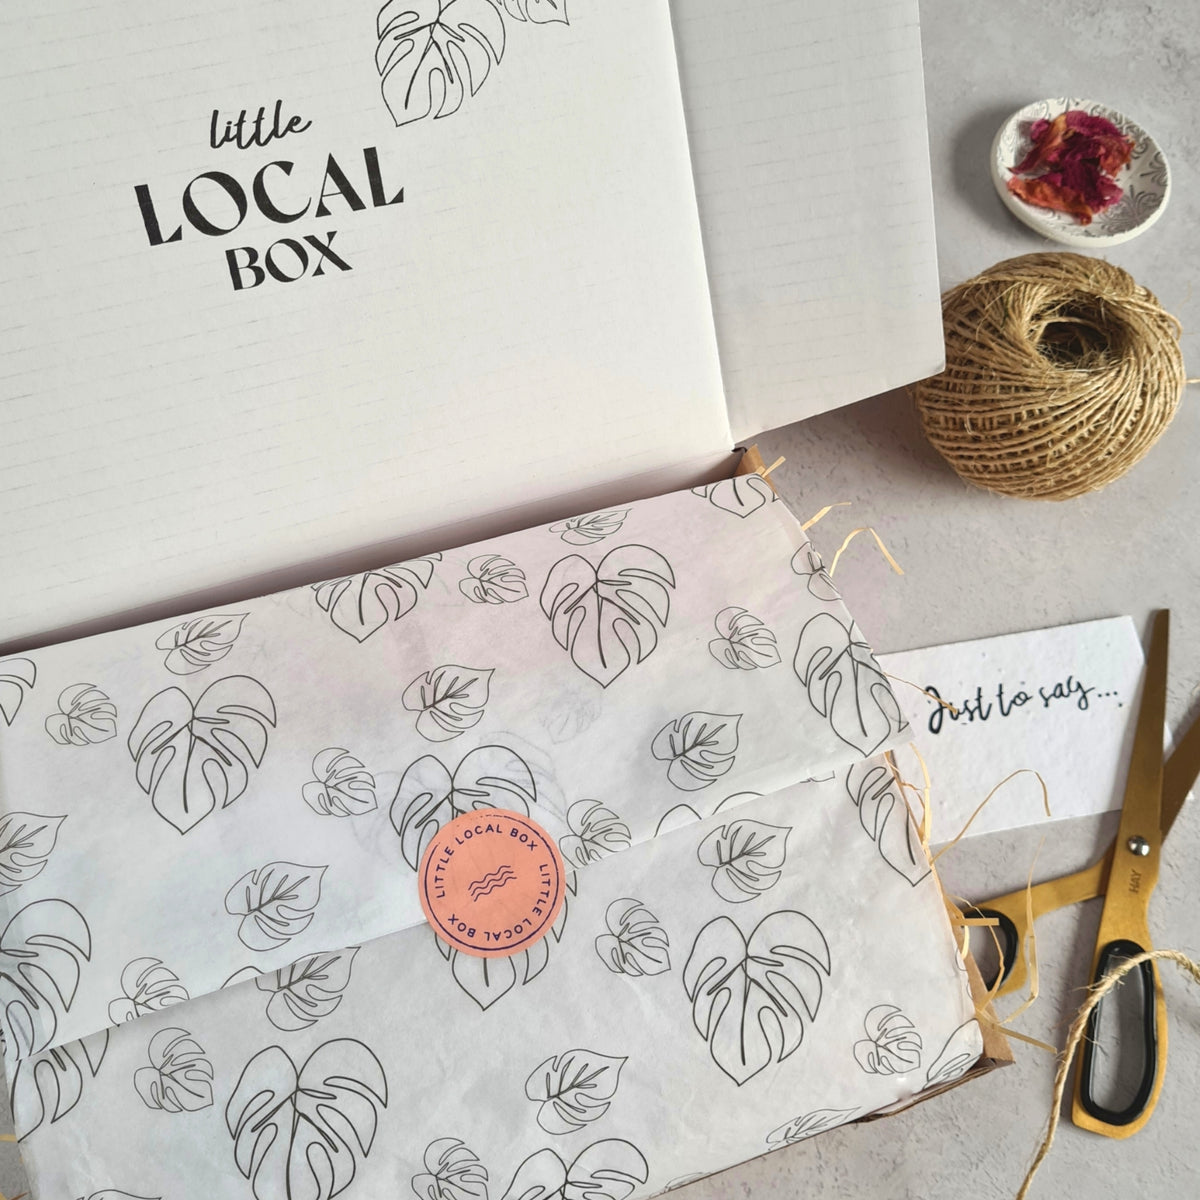 Little Local Box - Eco-friendly gift boxes showcasing independent artisans in the UK, by region. Collections are gifting-ready and perfect for any occasion. Why not send a thoughtful earth-friendly gift box to a loved one or treat yourself?